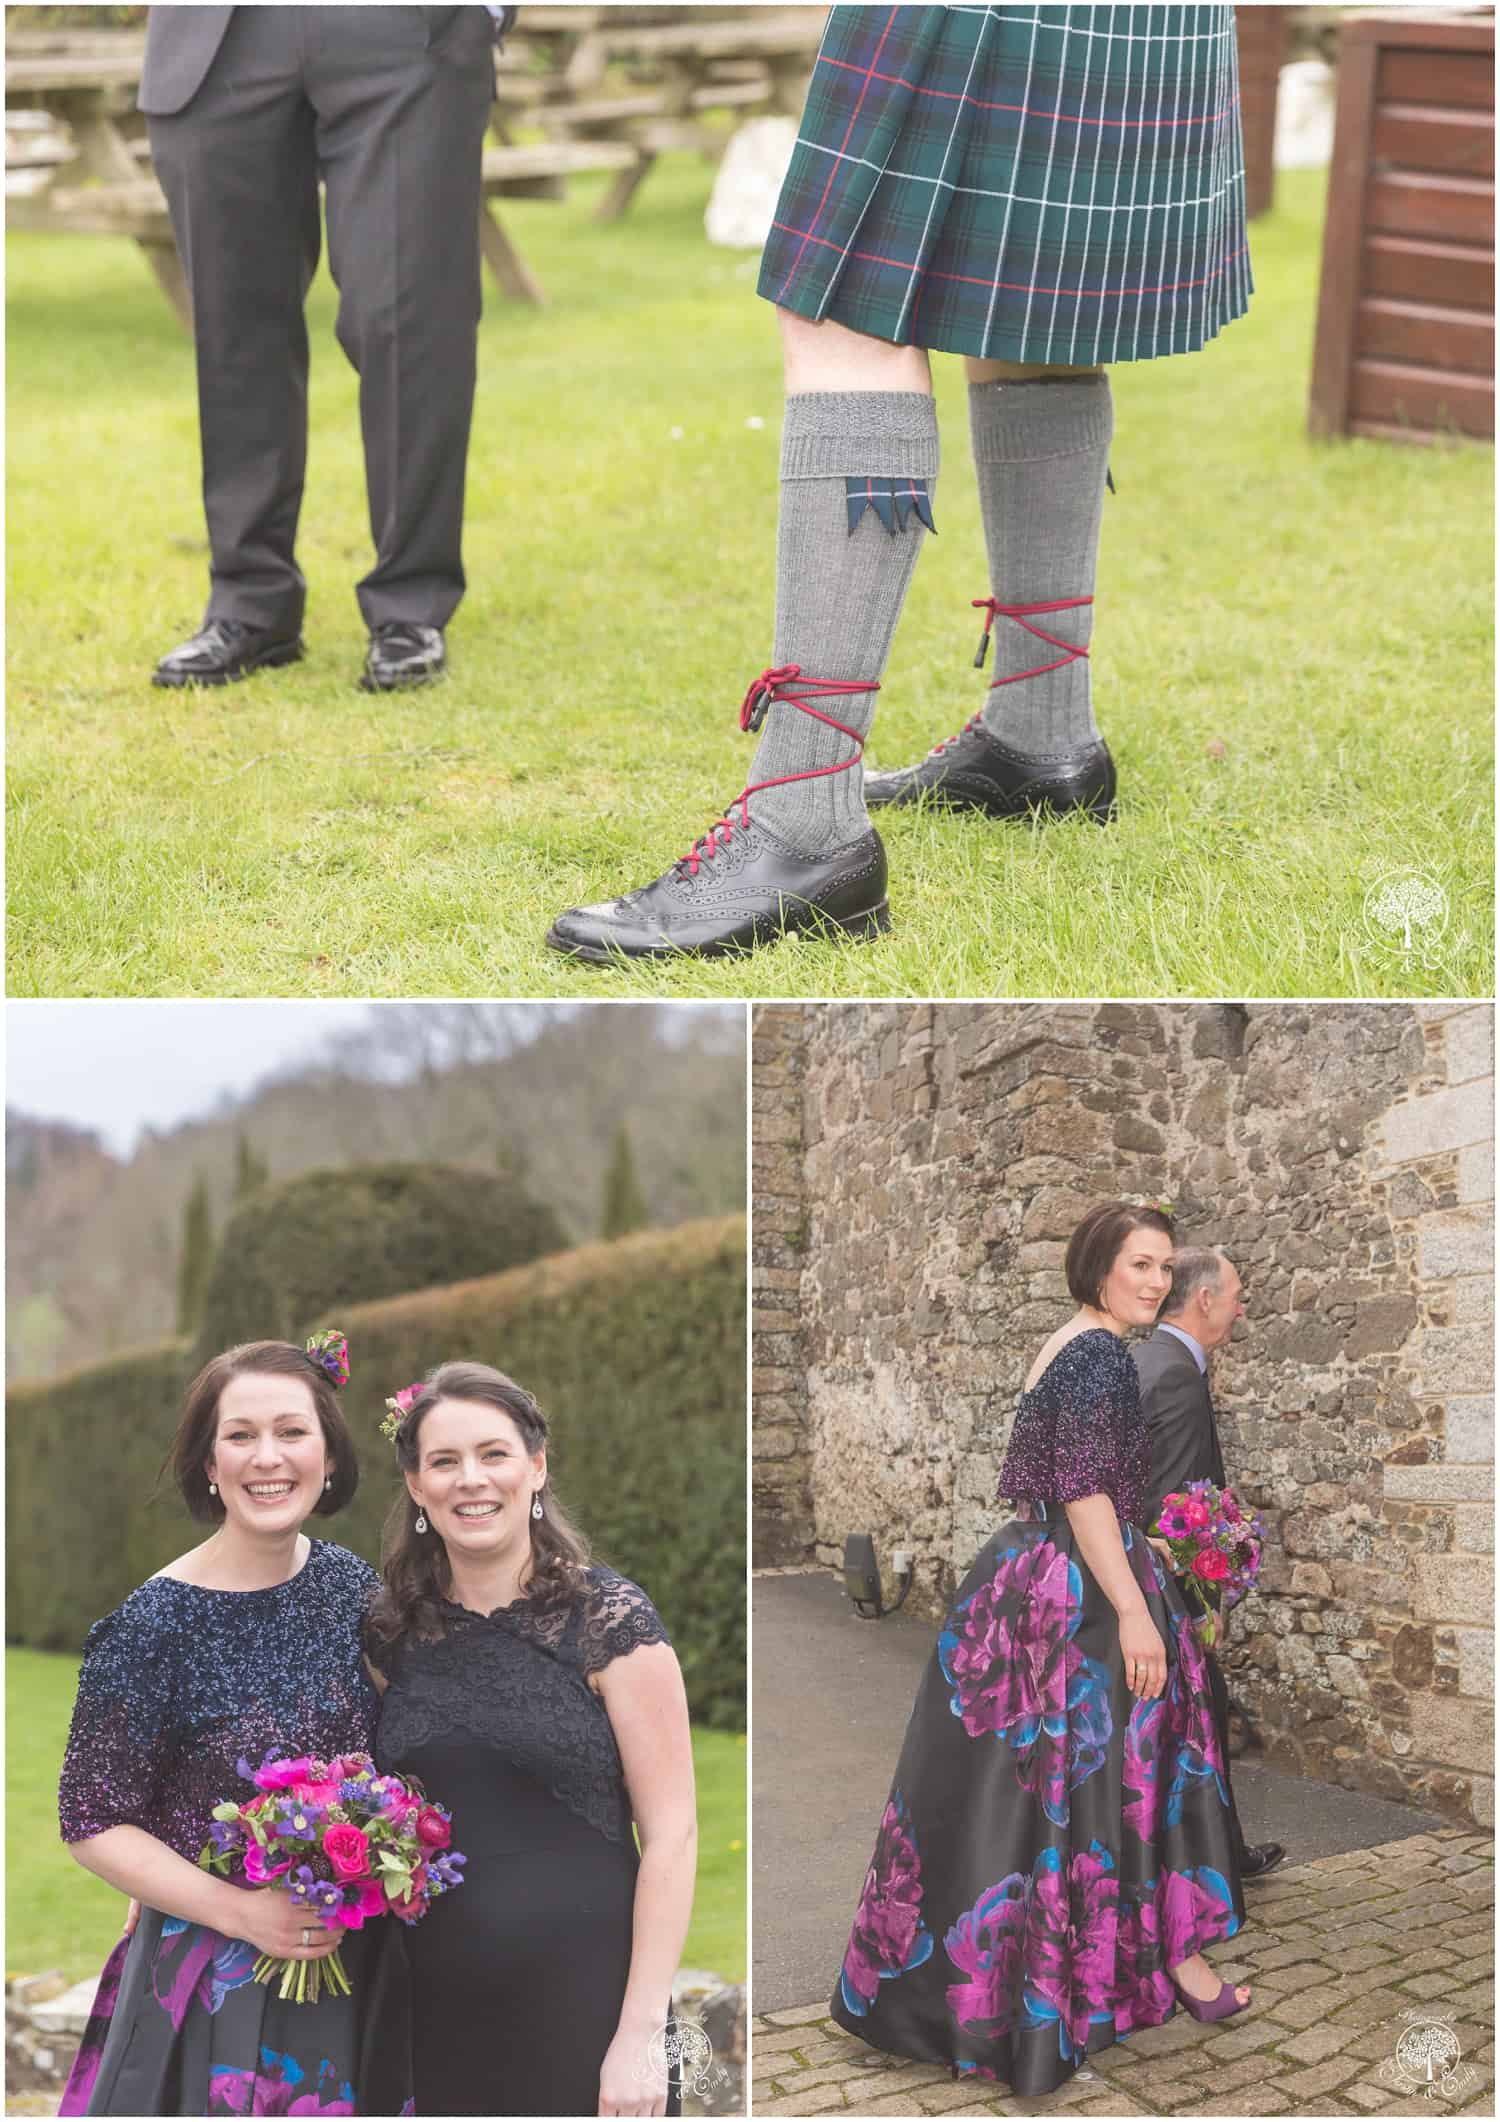 4 Katie & Chris - The Great Barn Devon, Images by Justin Krause